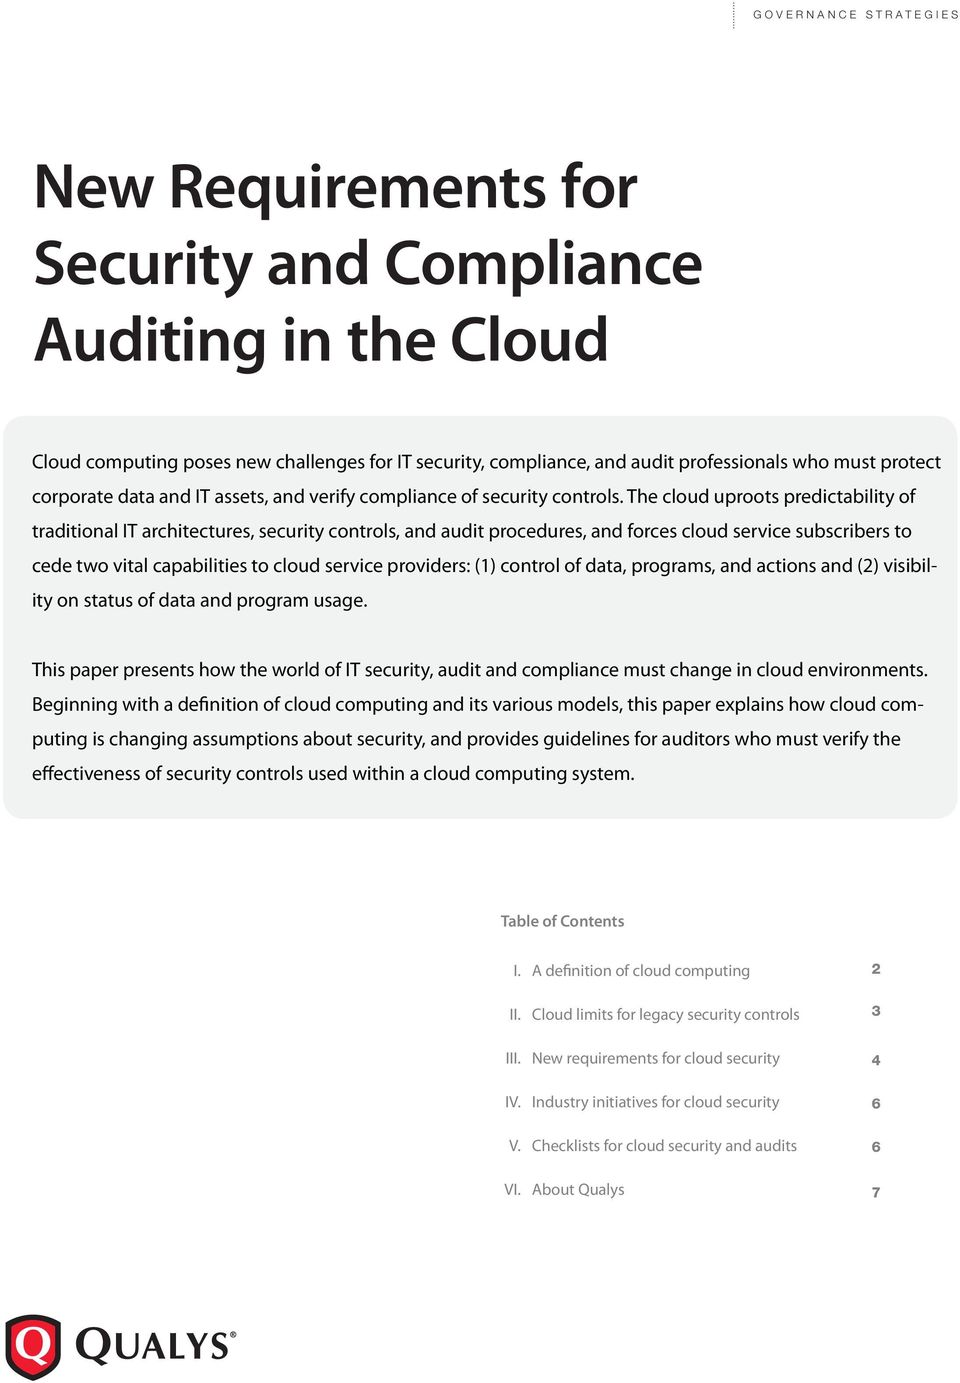 The cloud uproots predictability of traditional IT architectures, security controls, and audit procedures, and forces cloud service subscribers to cede two vital capabilities to cloud service